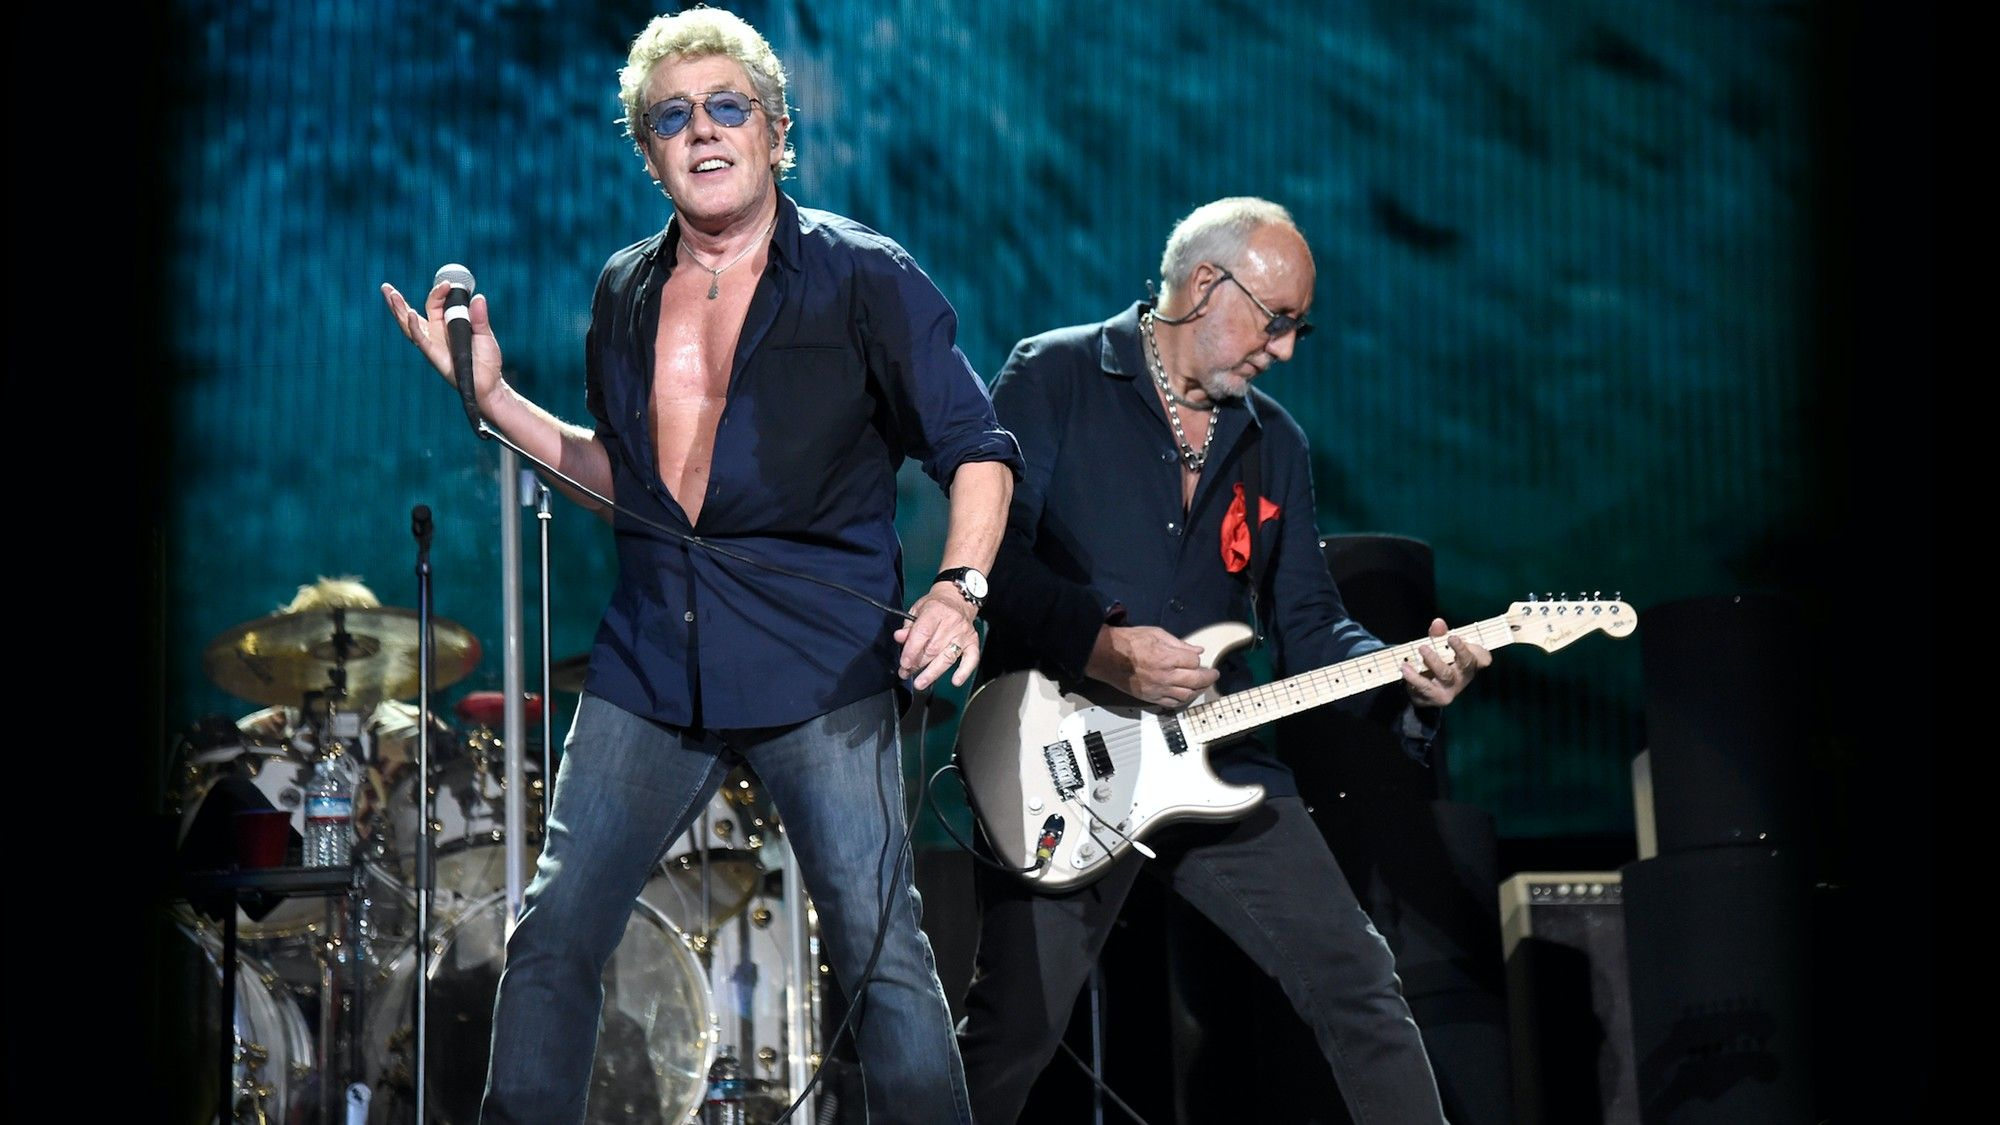 Roger Daltrey from The Who Is Still Having a Massive Laugh